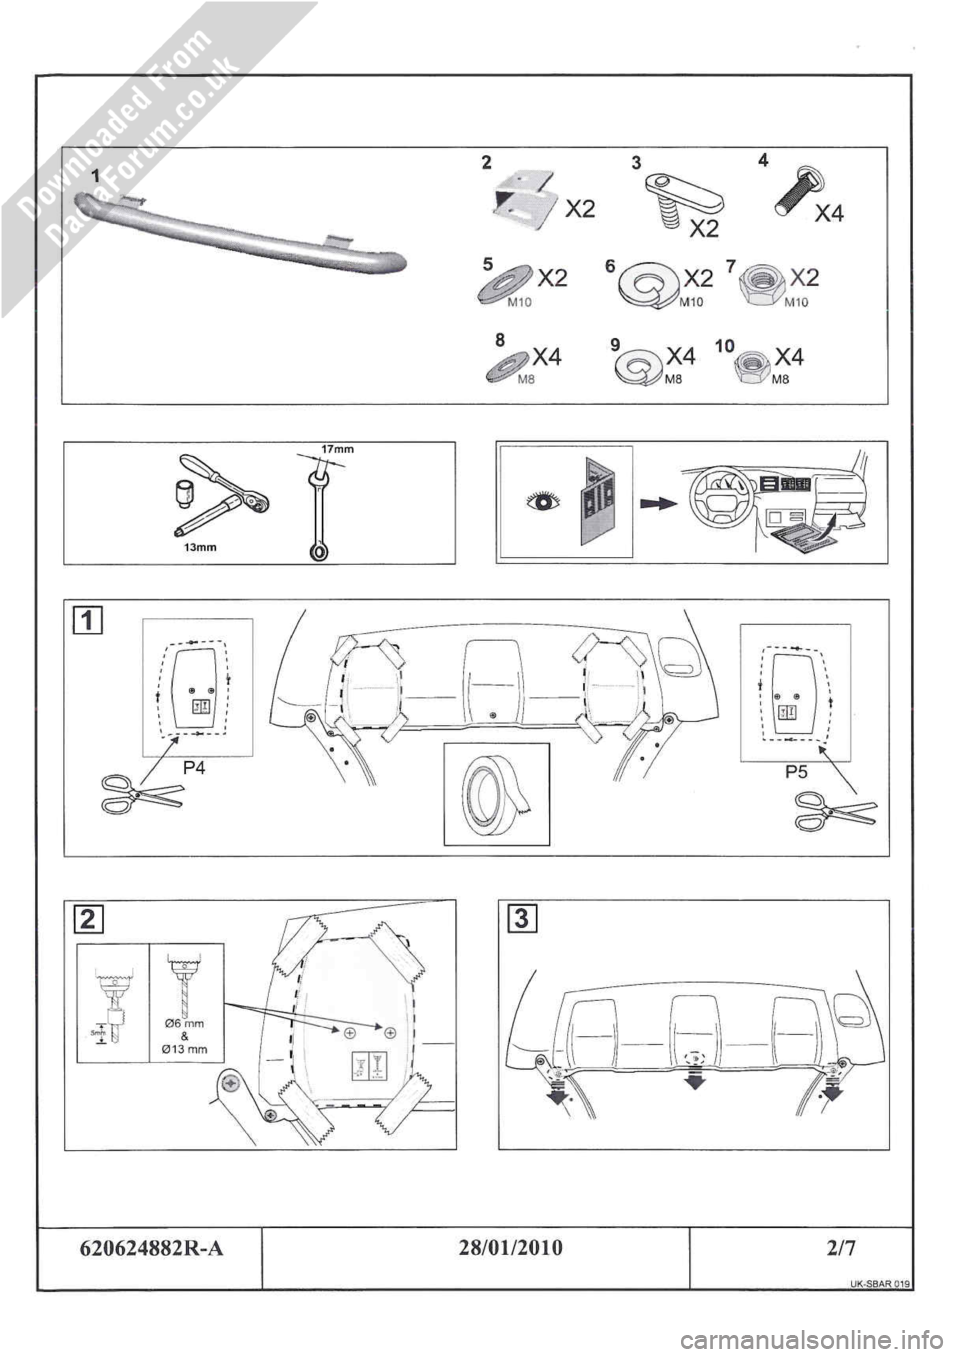 DACIA DUSTER 2010 1.G Front Styling Bar Fitting Guide Workshop Manual, Page 2